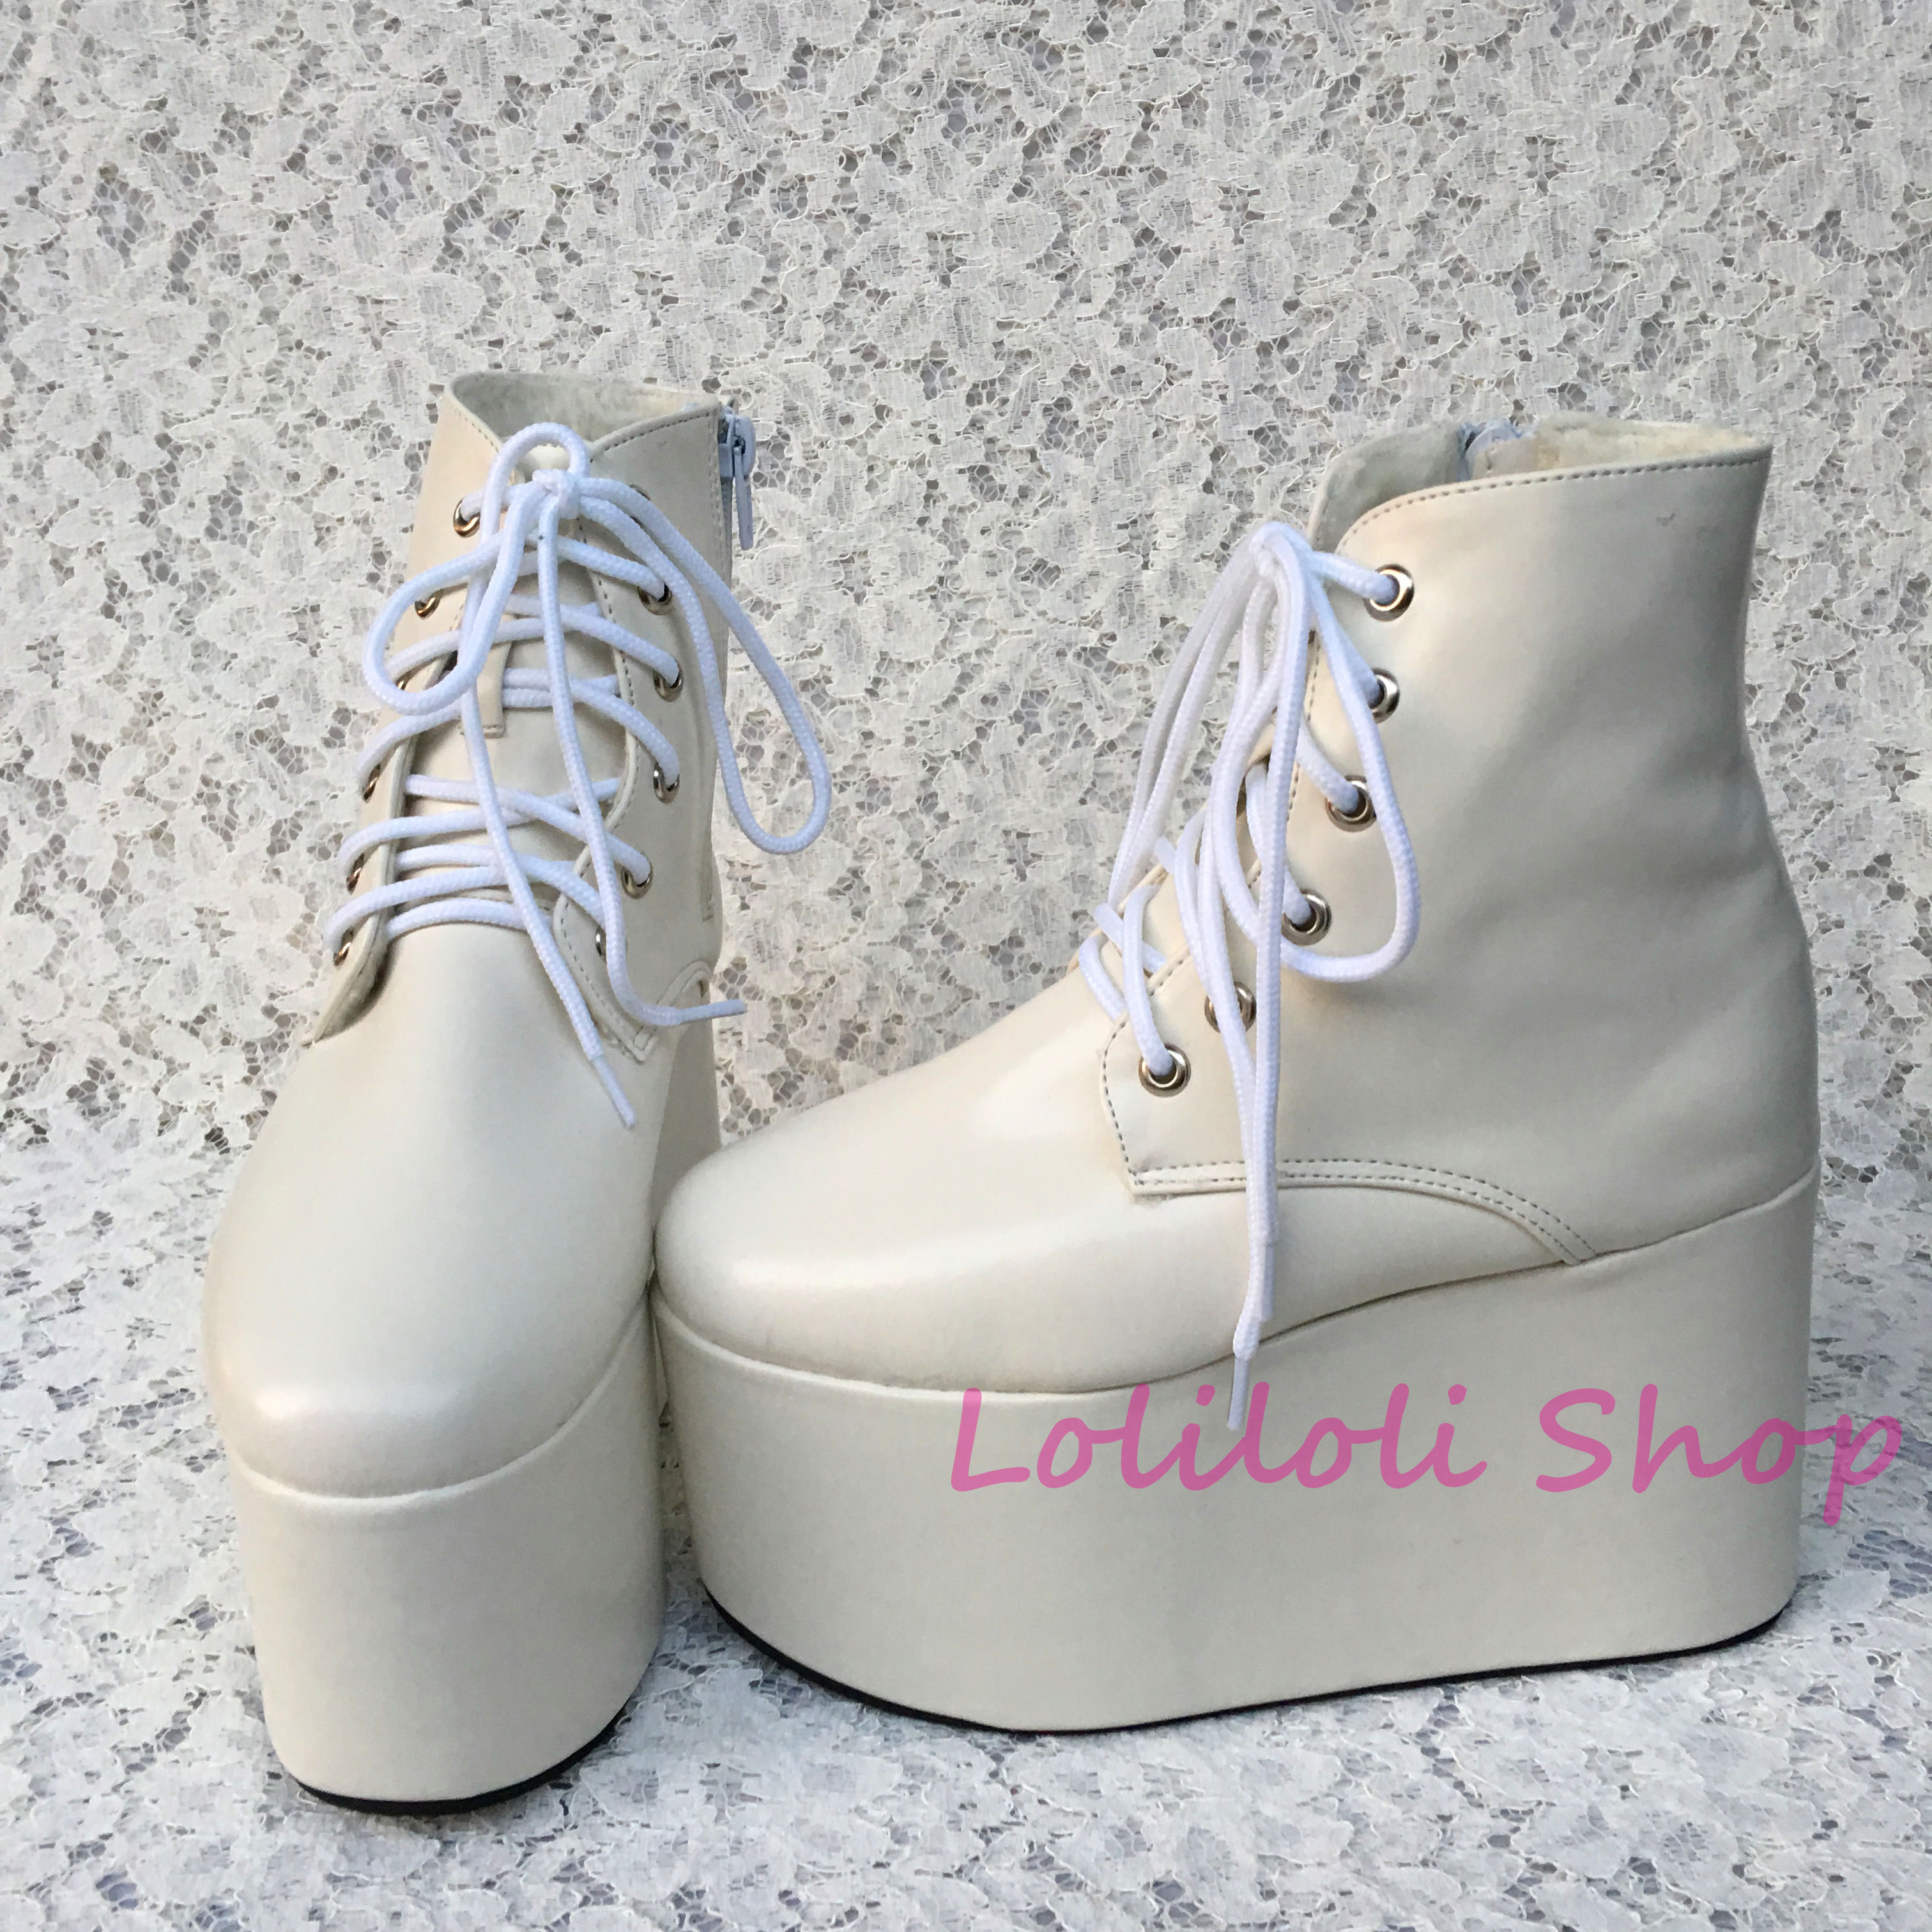 Princess sweet lolita shoes Lolilloliyoyo antaina The thick white bottom shoe shaped high bright leather flat platform shoe 4178 si4178dy si4178 4178 sop8